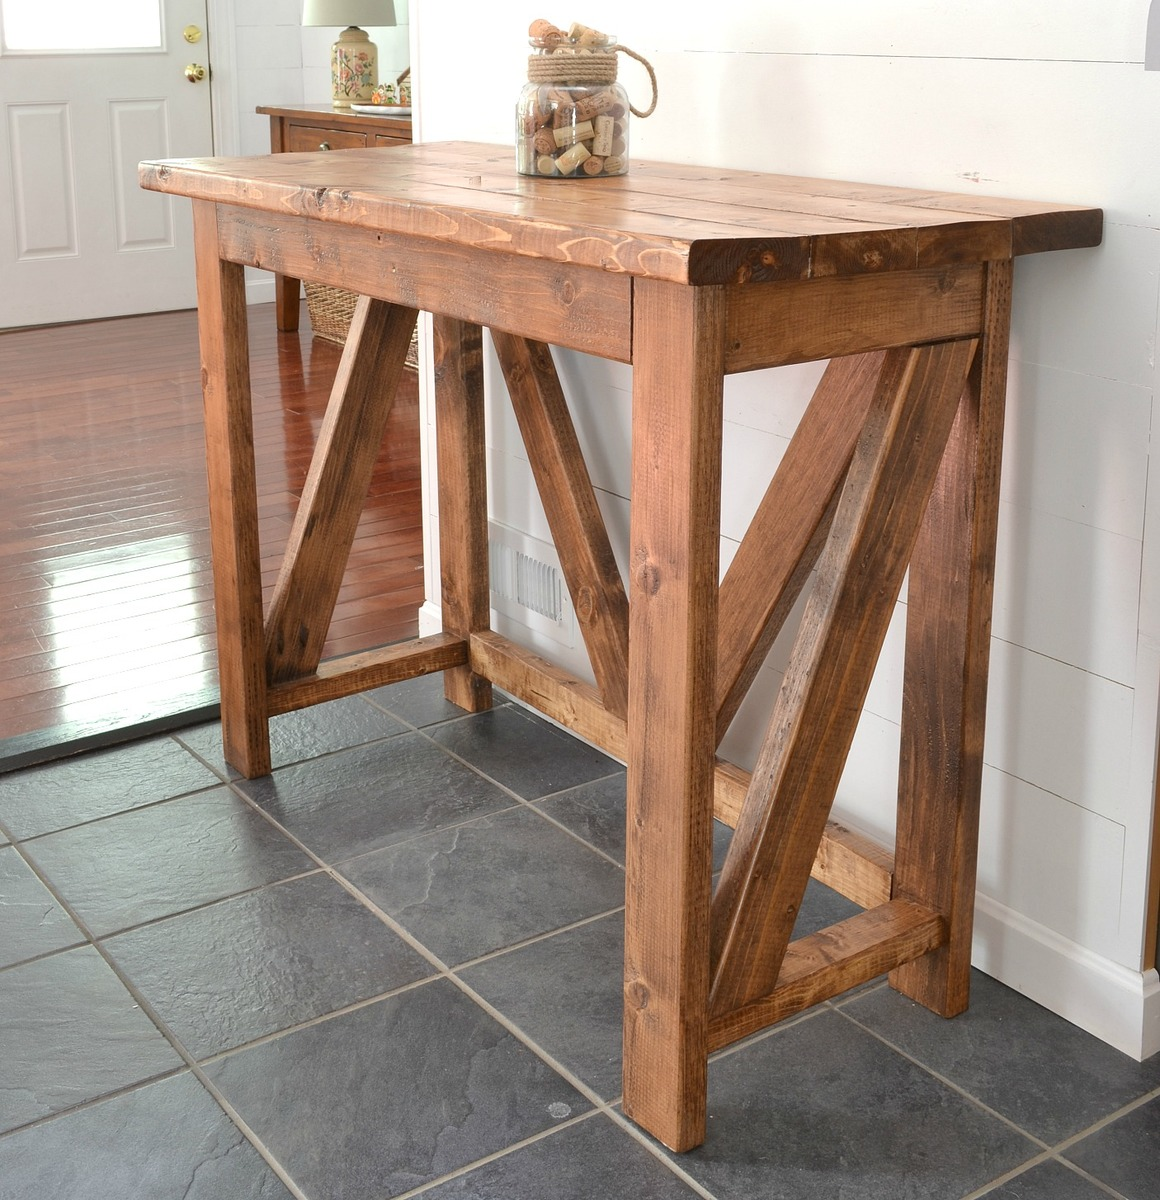 40 Outdoor Woodworking Projects For Beginners: $40 Breakfast Bar - DIY Projects